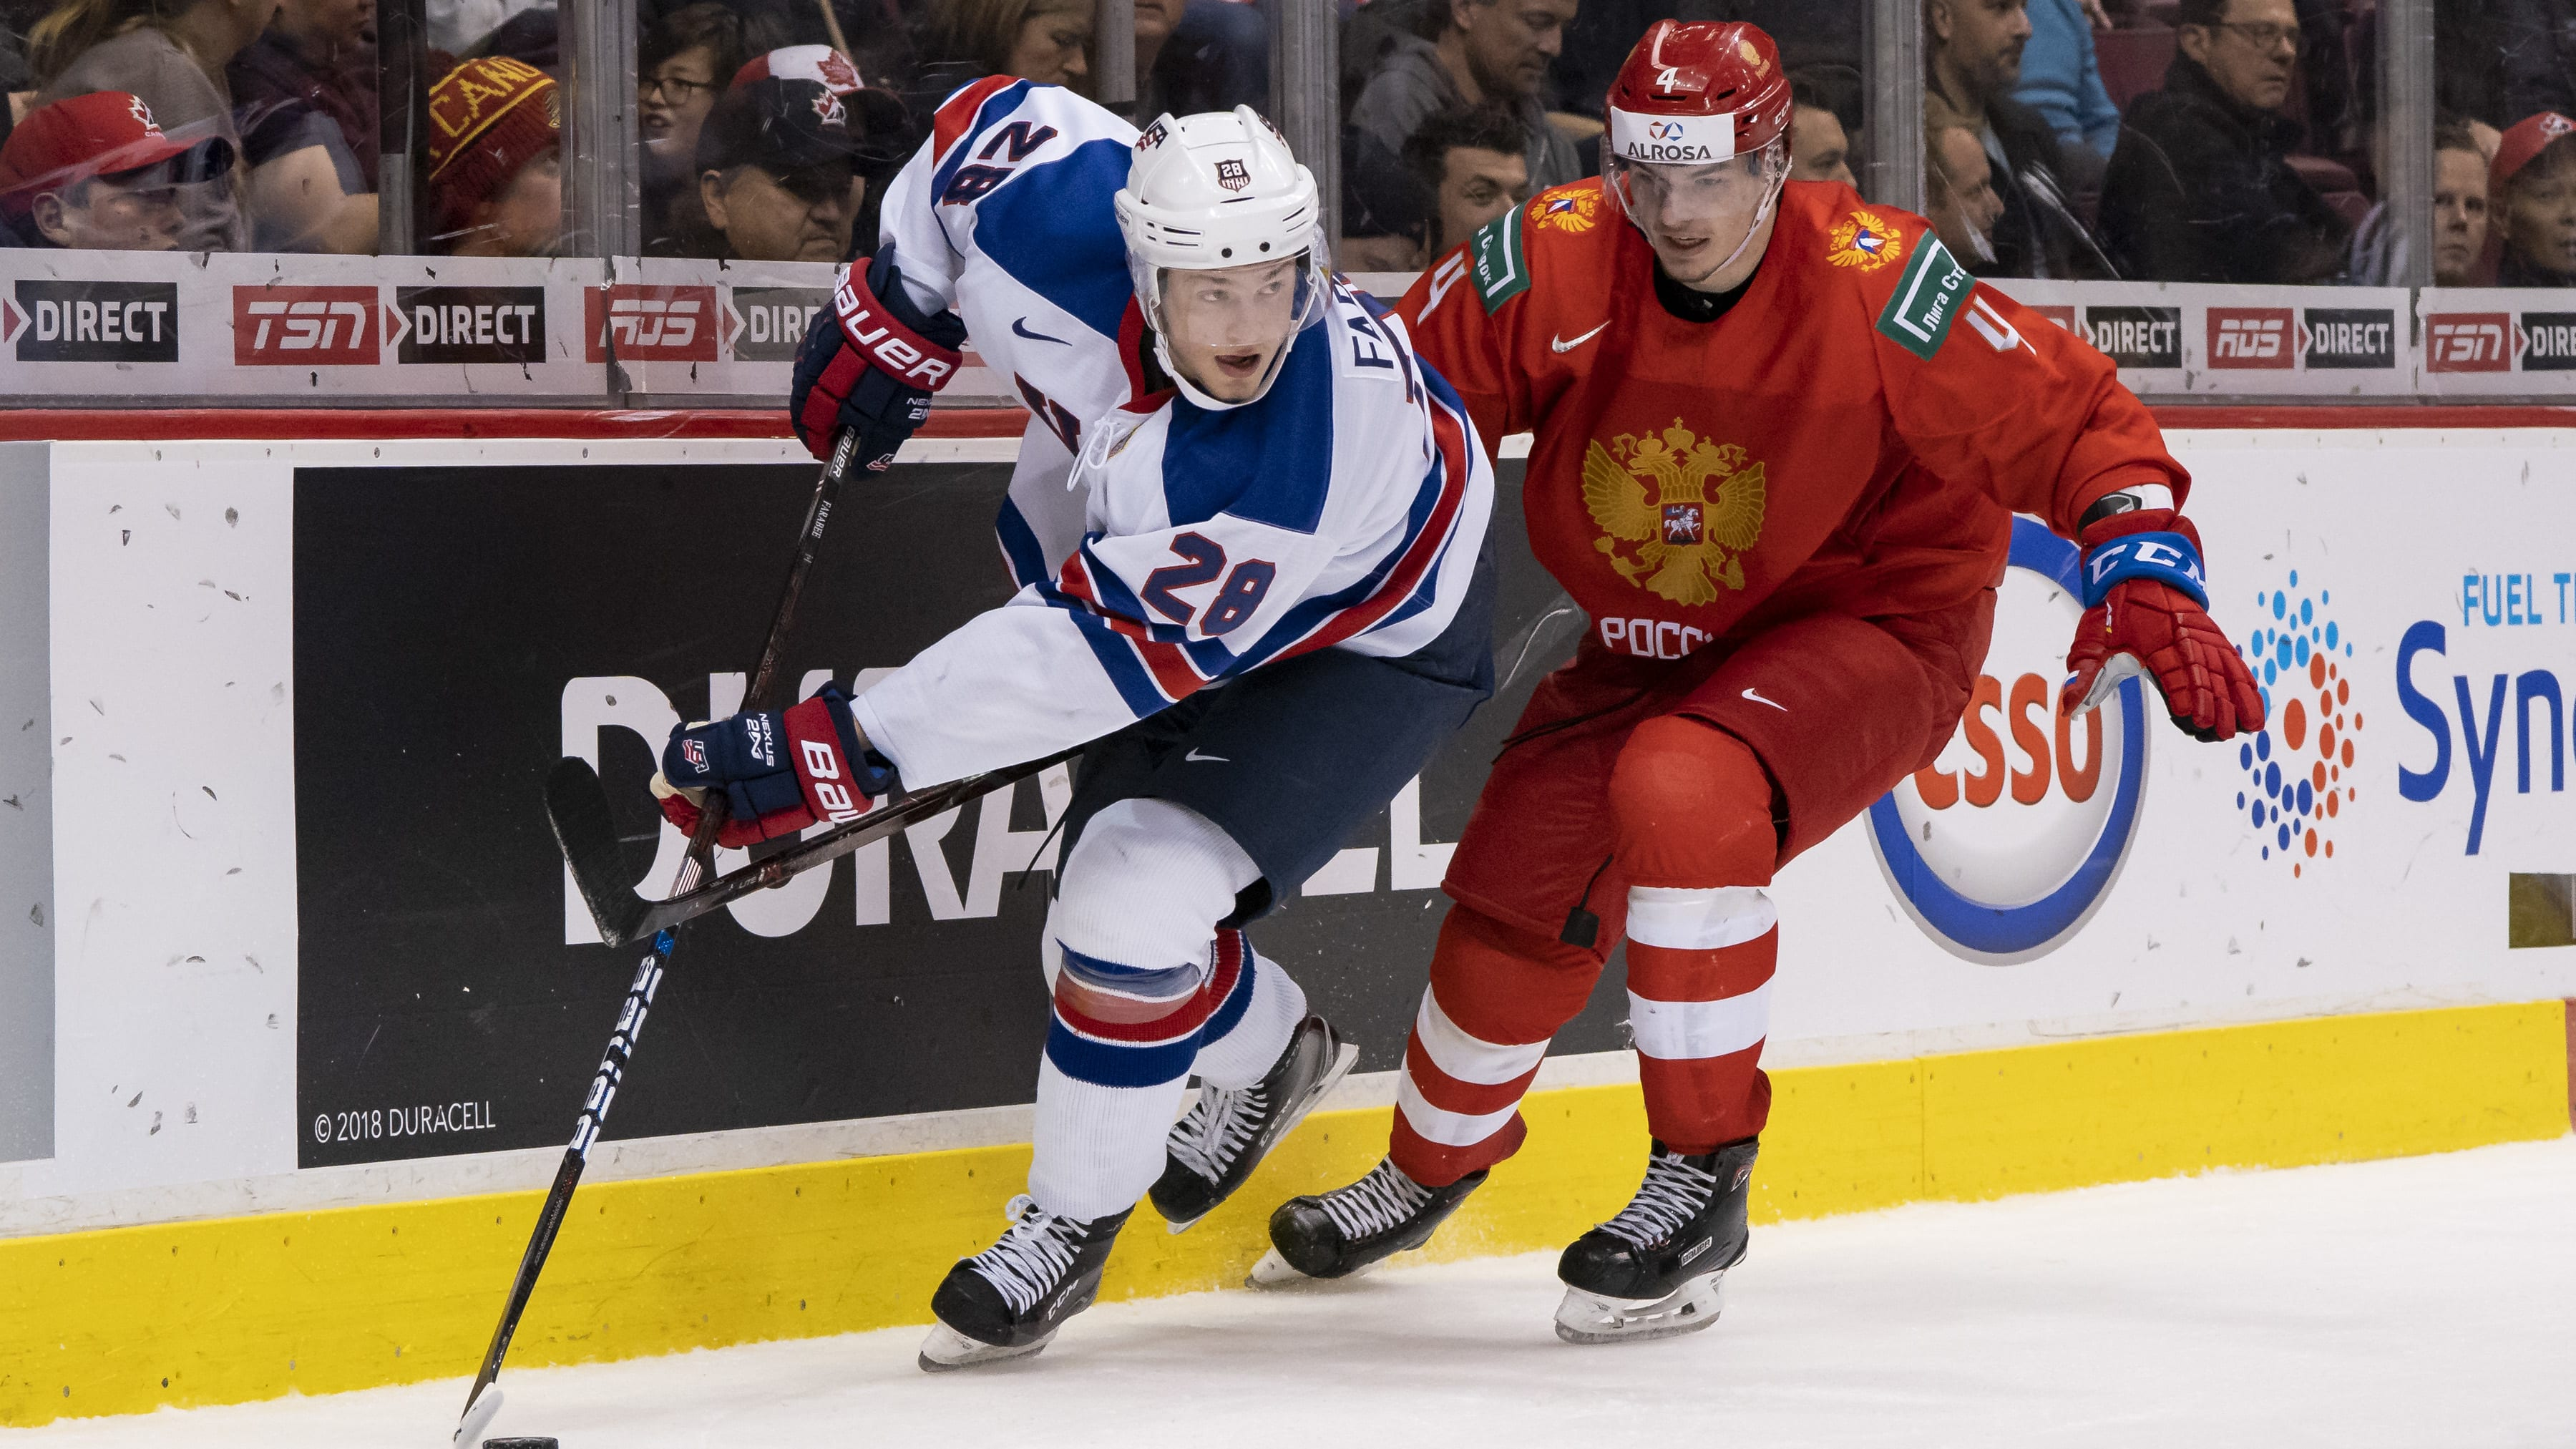 VANCOUVER, BC - JANUARY 4: Alexander Alexeyev #4 of Russia tries to check Joel Farabee #28 of the United States in Semifinals hockey action of the 2019 IIHF World Junior Championship on January, 4, 2019 at Rogers Arena in Vancouver, British Columbia, Canada.  (Photo by Rich Lam/Getty Images)